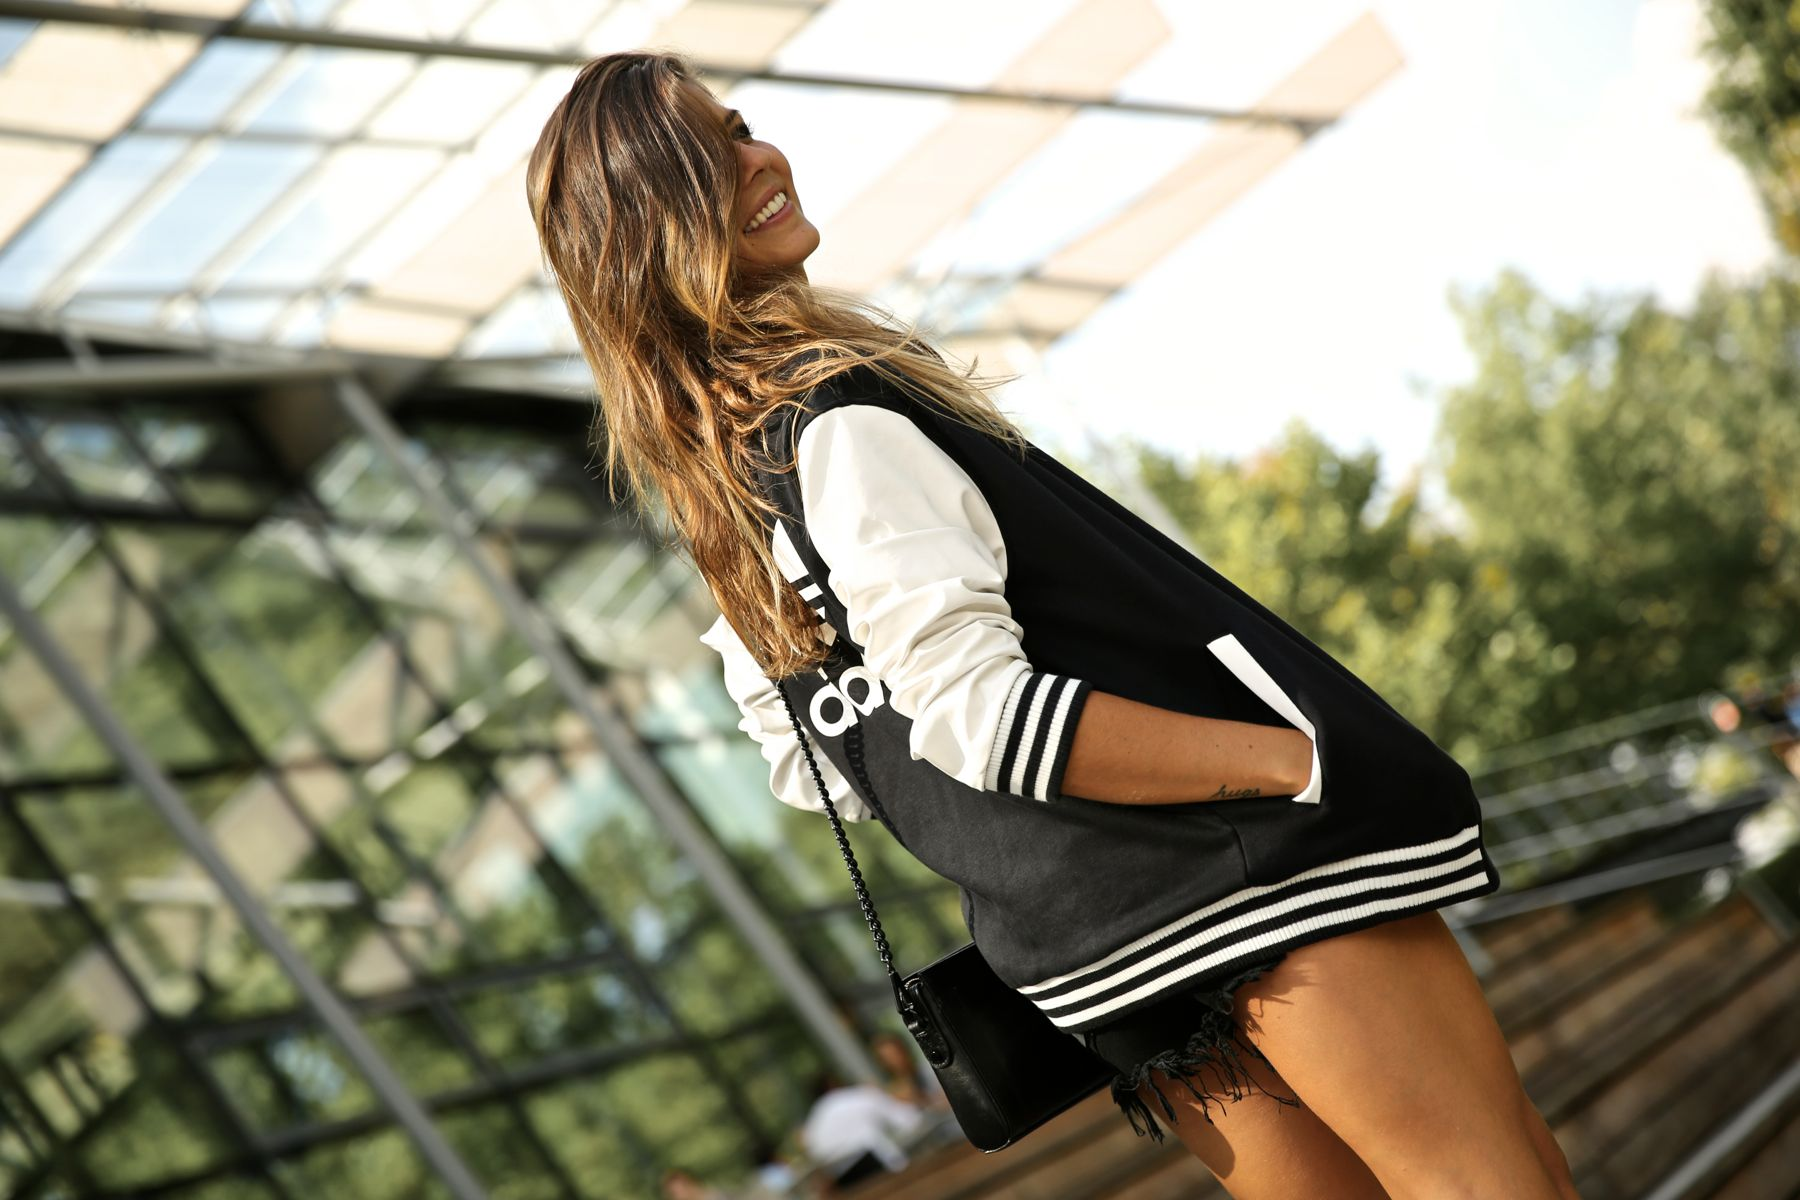 trendy_taste-look-outfit-street_style-ootd-blog-blogger-fashion_spain-moda_españa-stan_smith-adidas-herzo-sport_chic-baseball-chaqueta-shorts-6